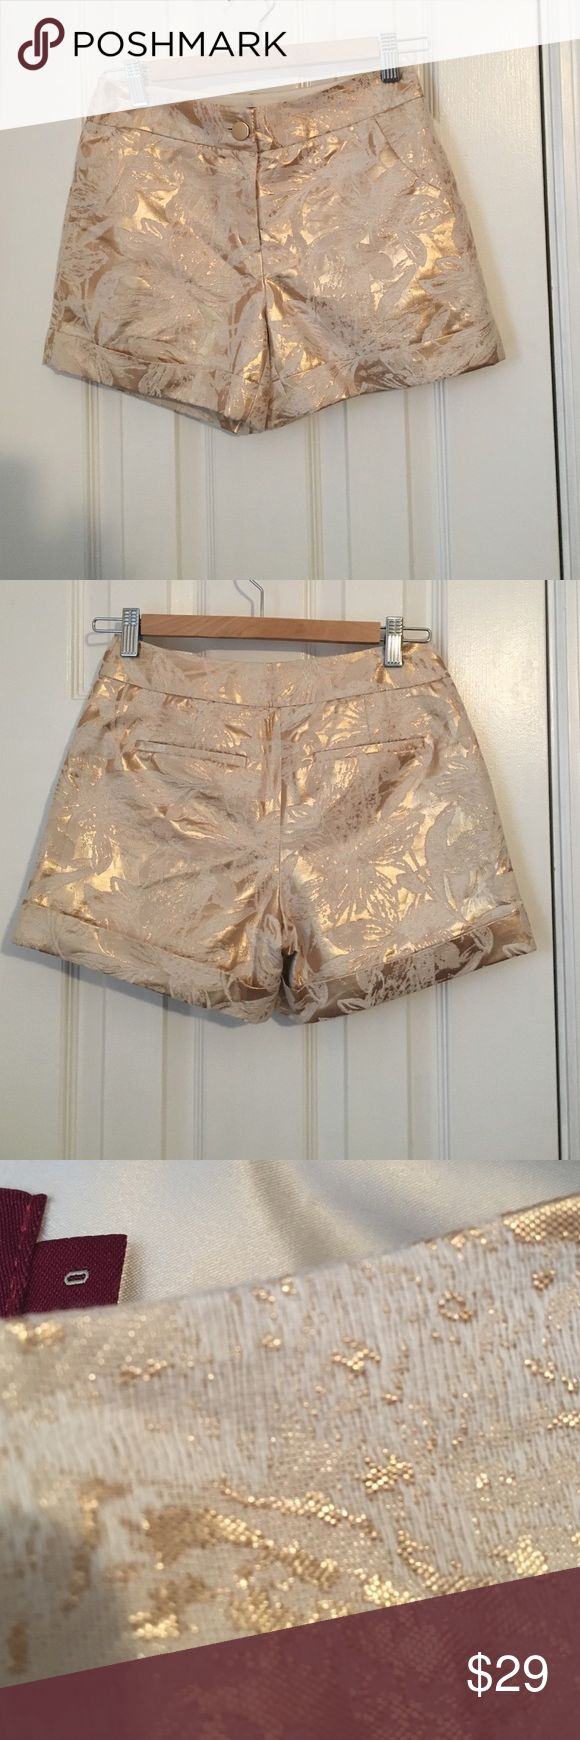 Like New Gold Ted Baker Shorts Gold Ted Baker Shorts Ted Baker Shorts